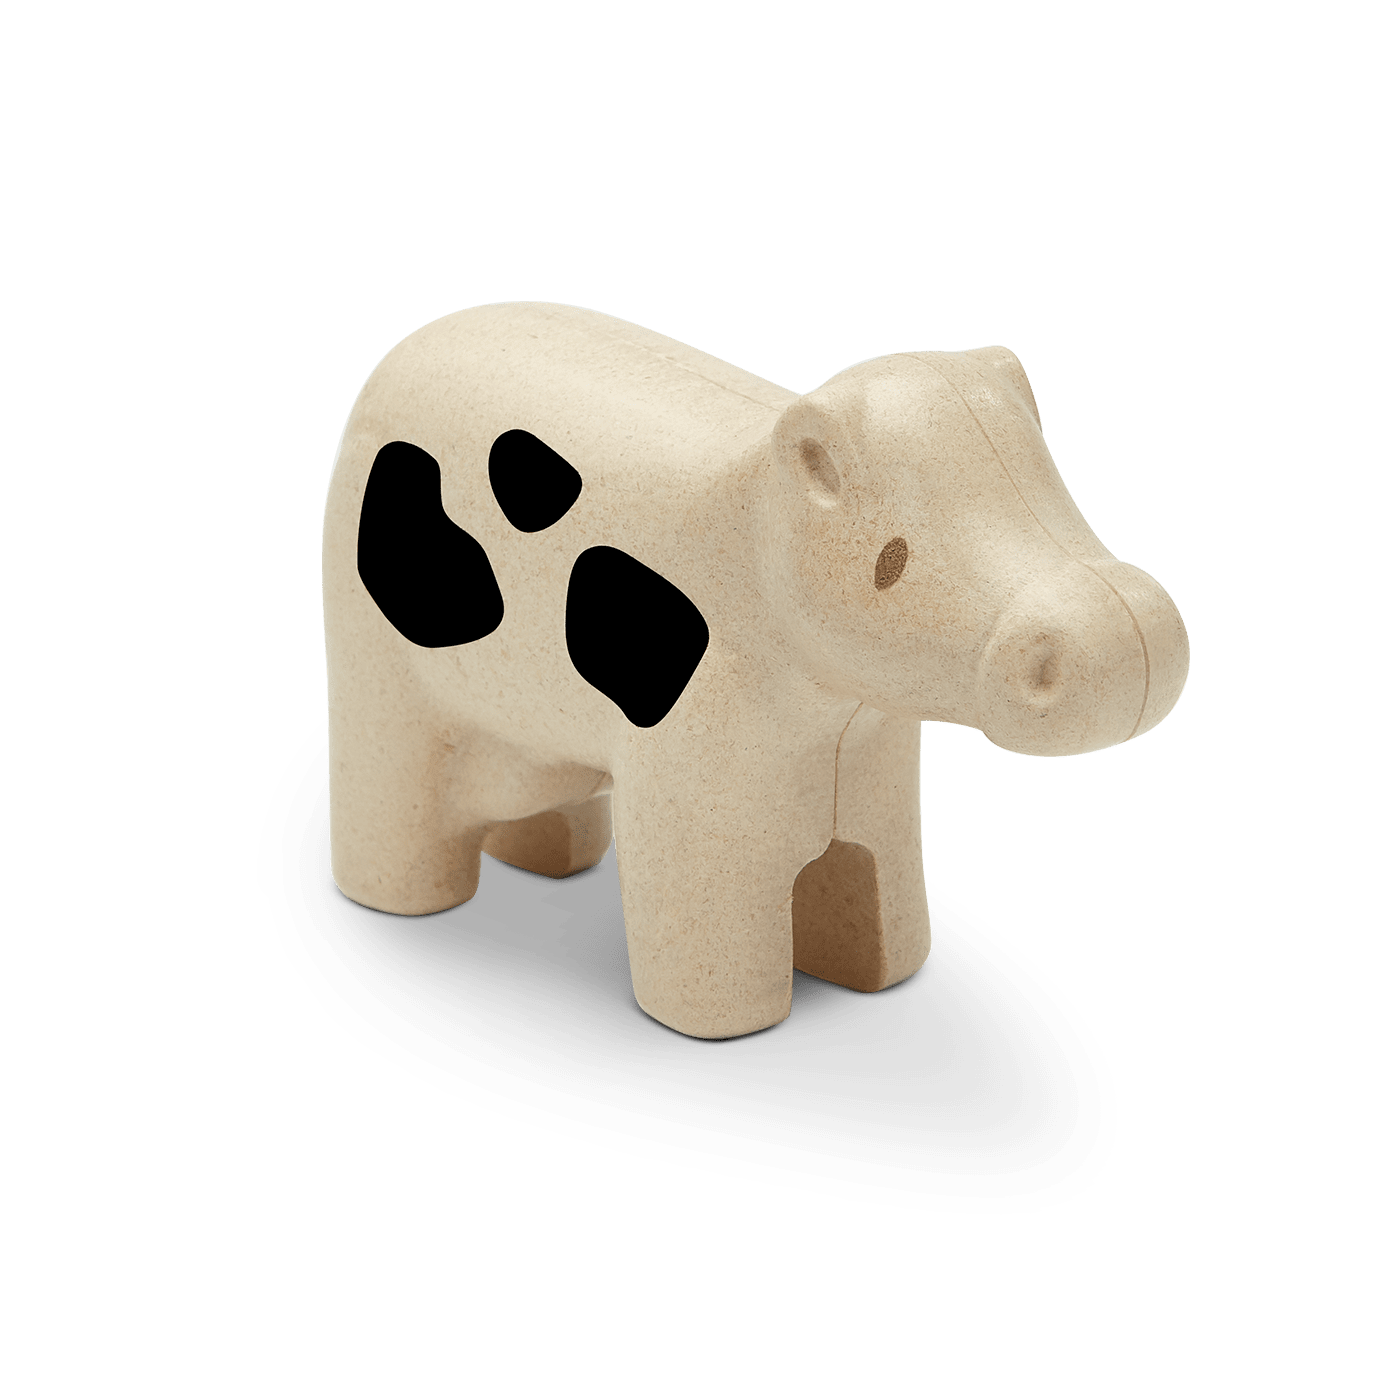 6144_PlanToys_COW_Pretend_Play_Imagination_Social_Language_and_Communications_Fine_Motor_12m_Wooden_toys_Education_toys_Safety_Toys_Non-toxic_0.png